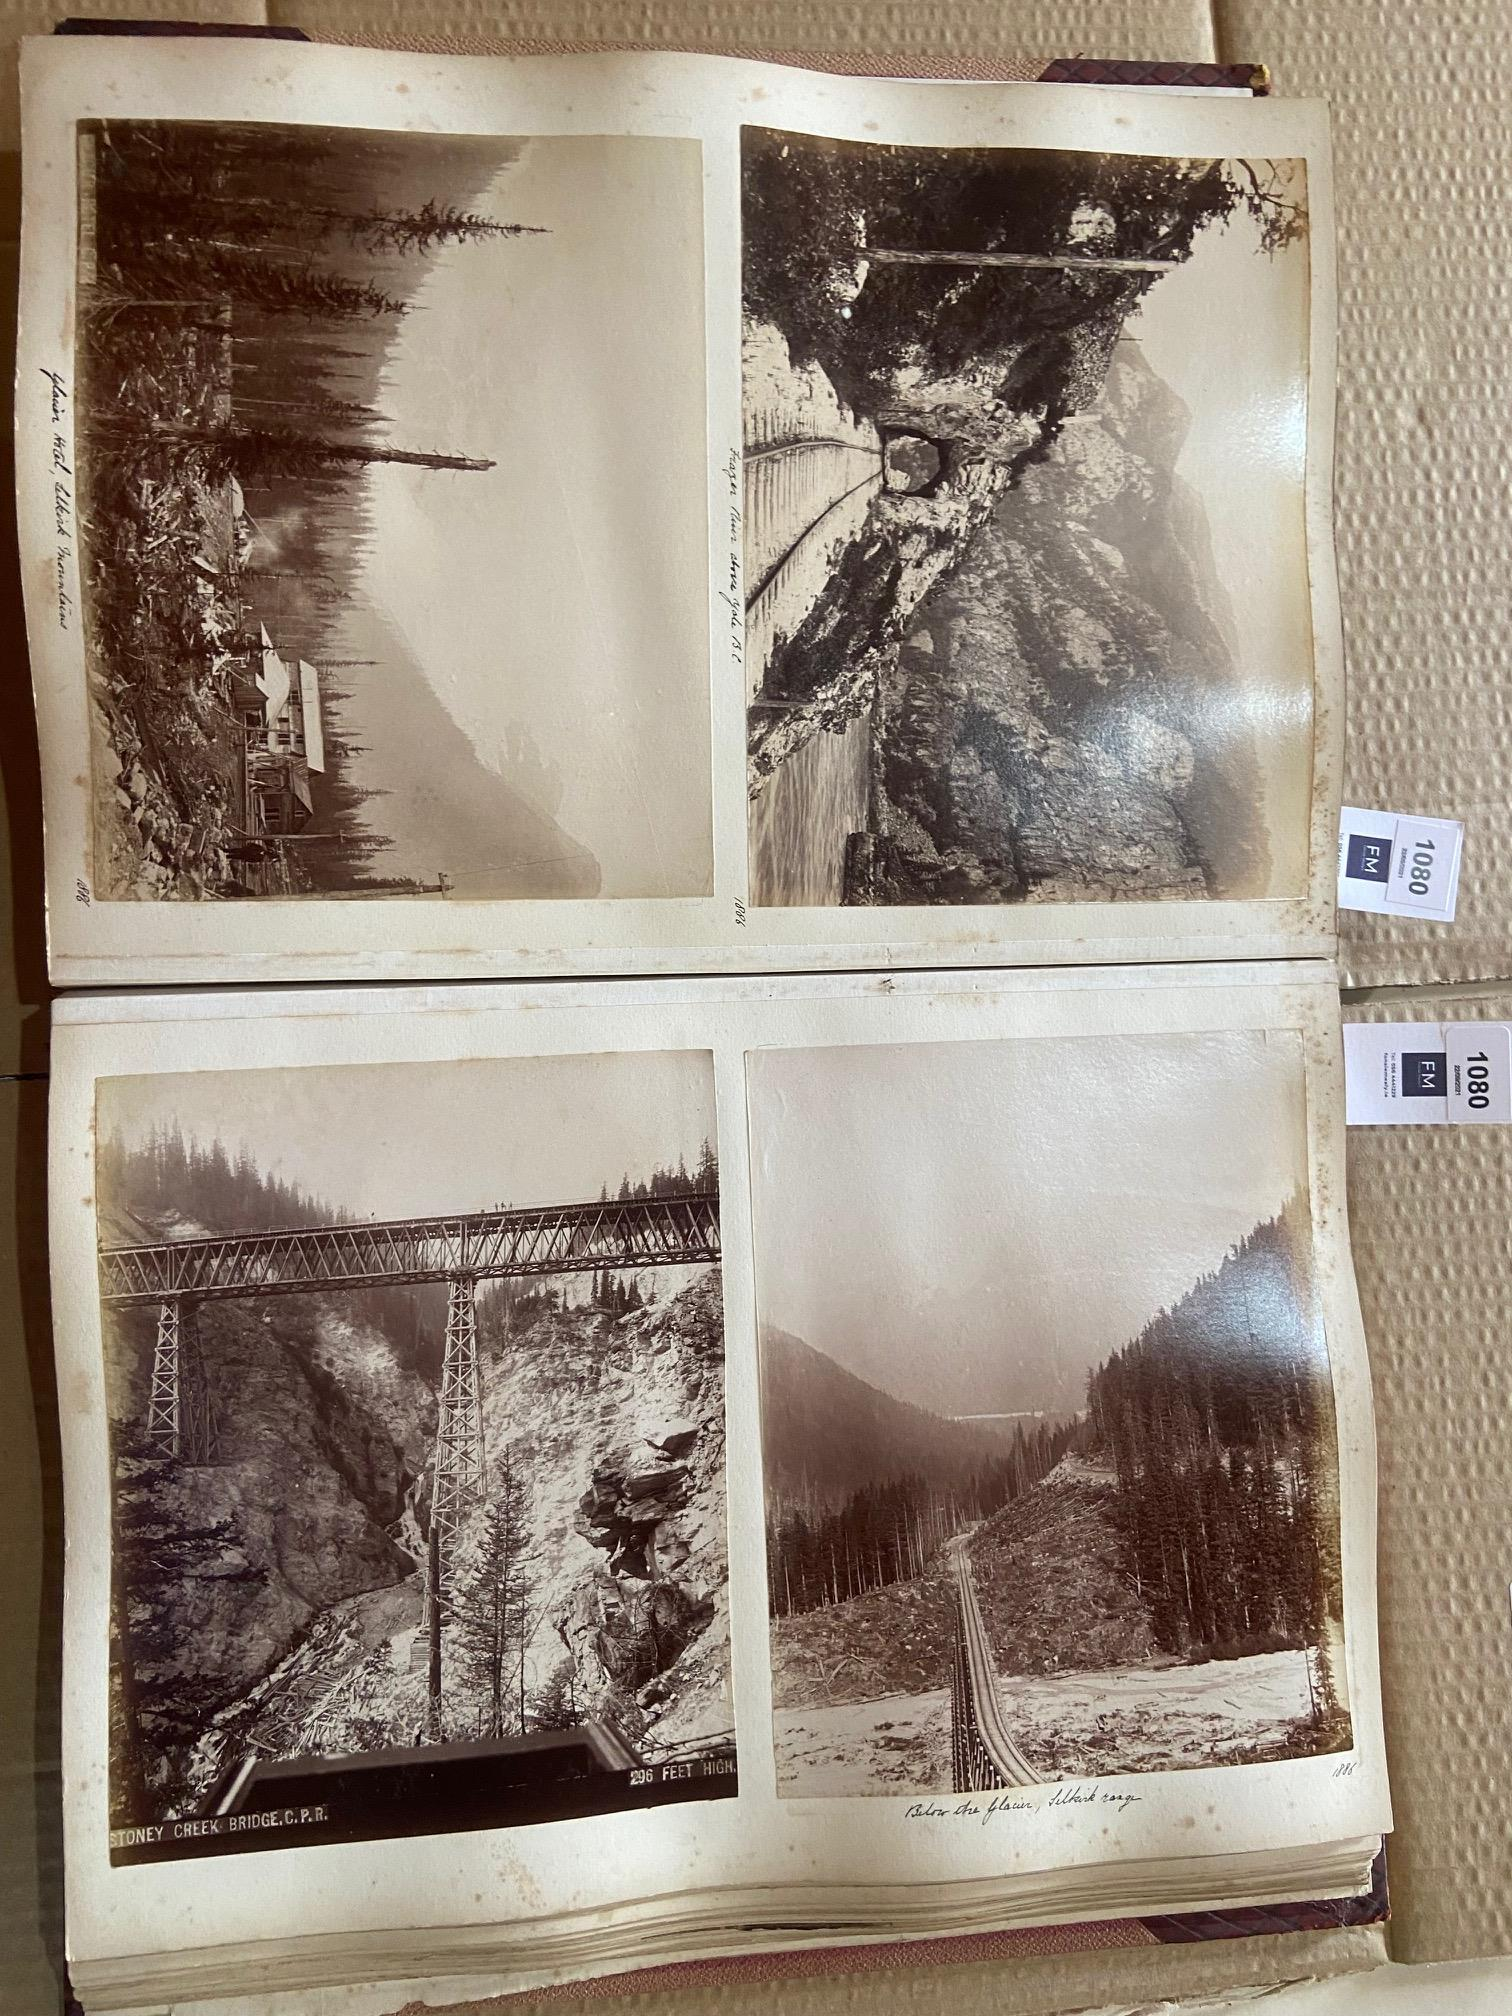 Photographs: Two large folio Albums of Photographs, each c. 1870 - 1890's. One Album contains - Image 11 of 31